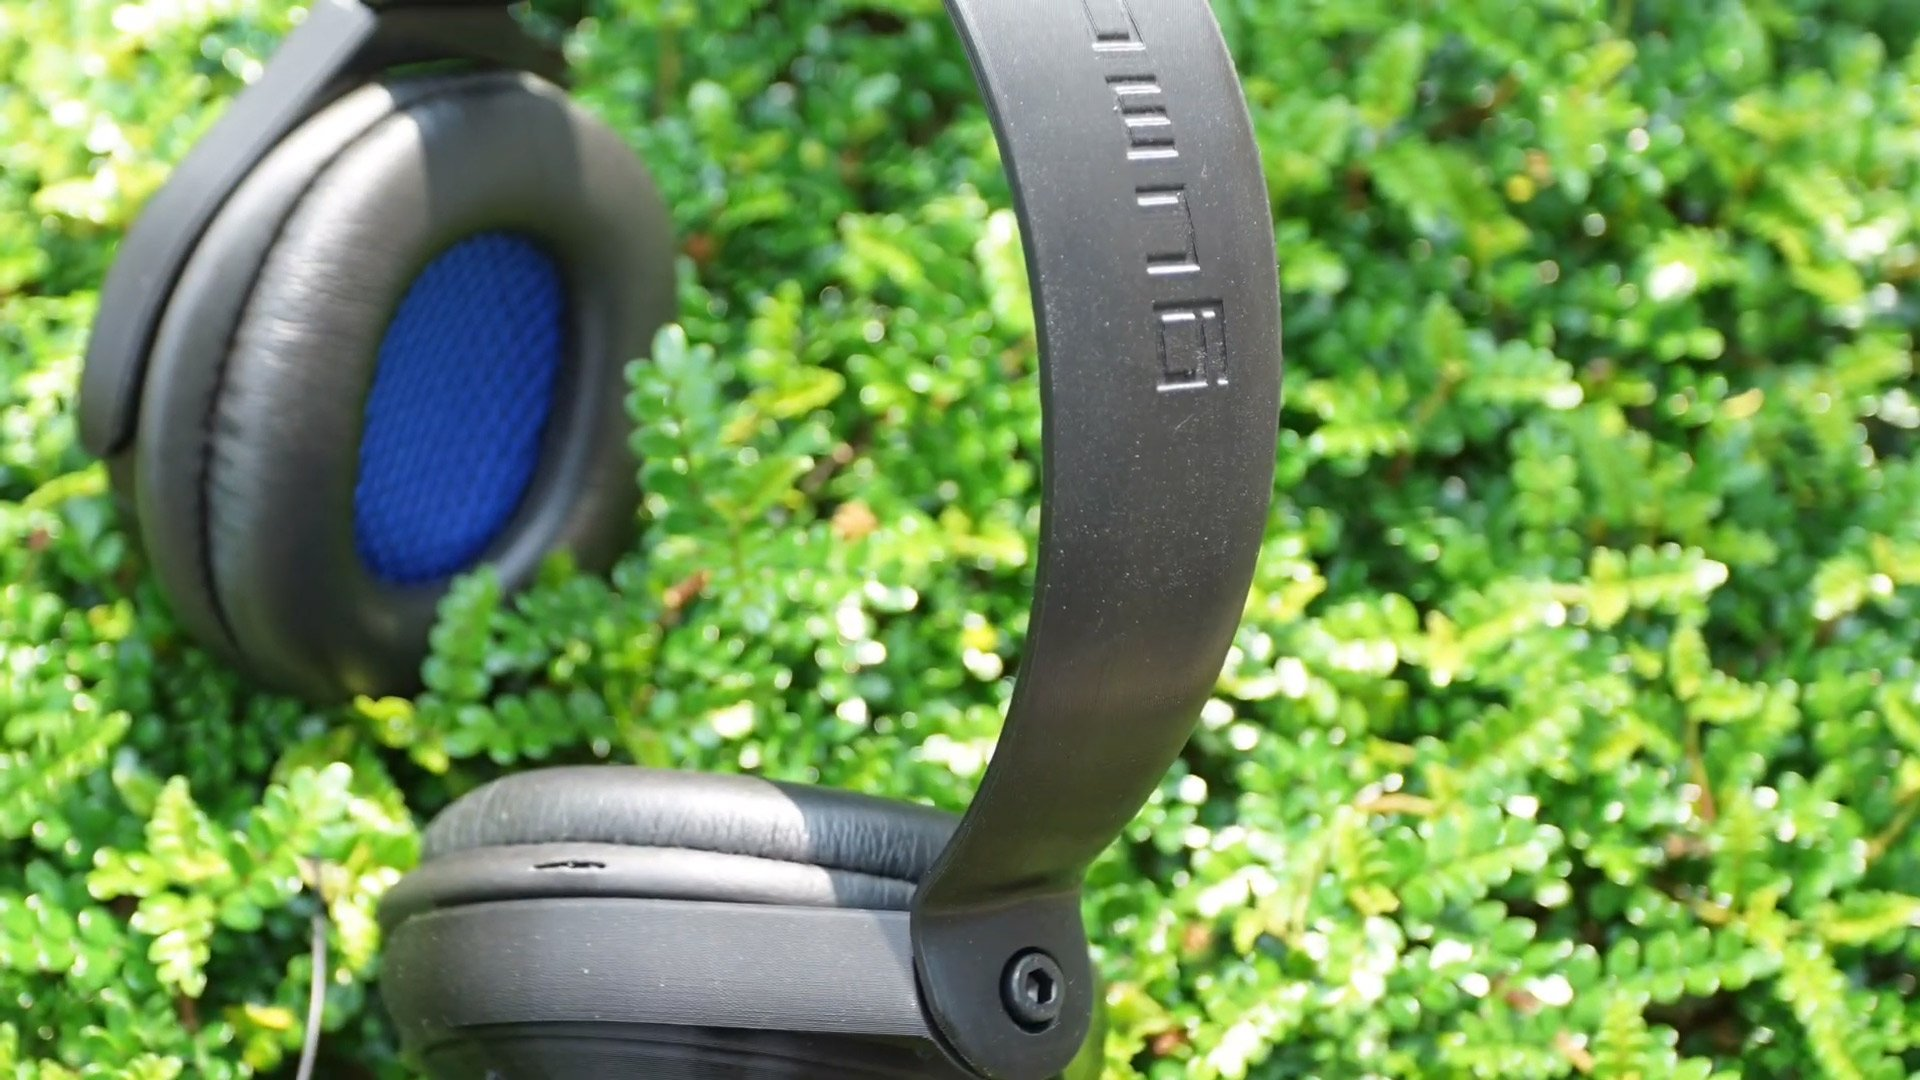 [Project] 3D Print Your Own Headphones | All3DP